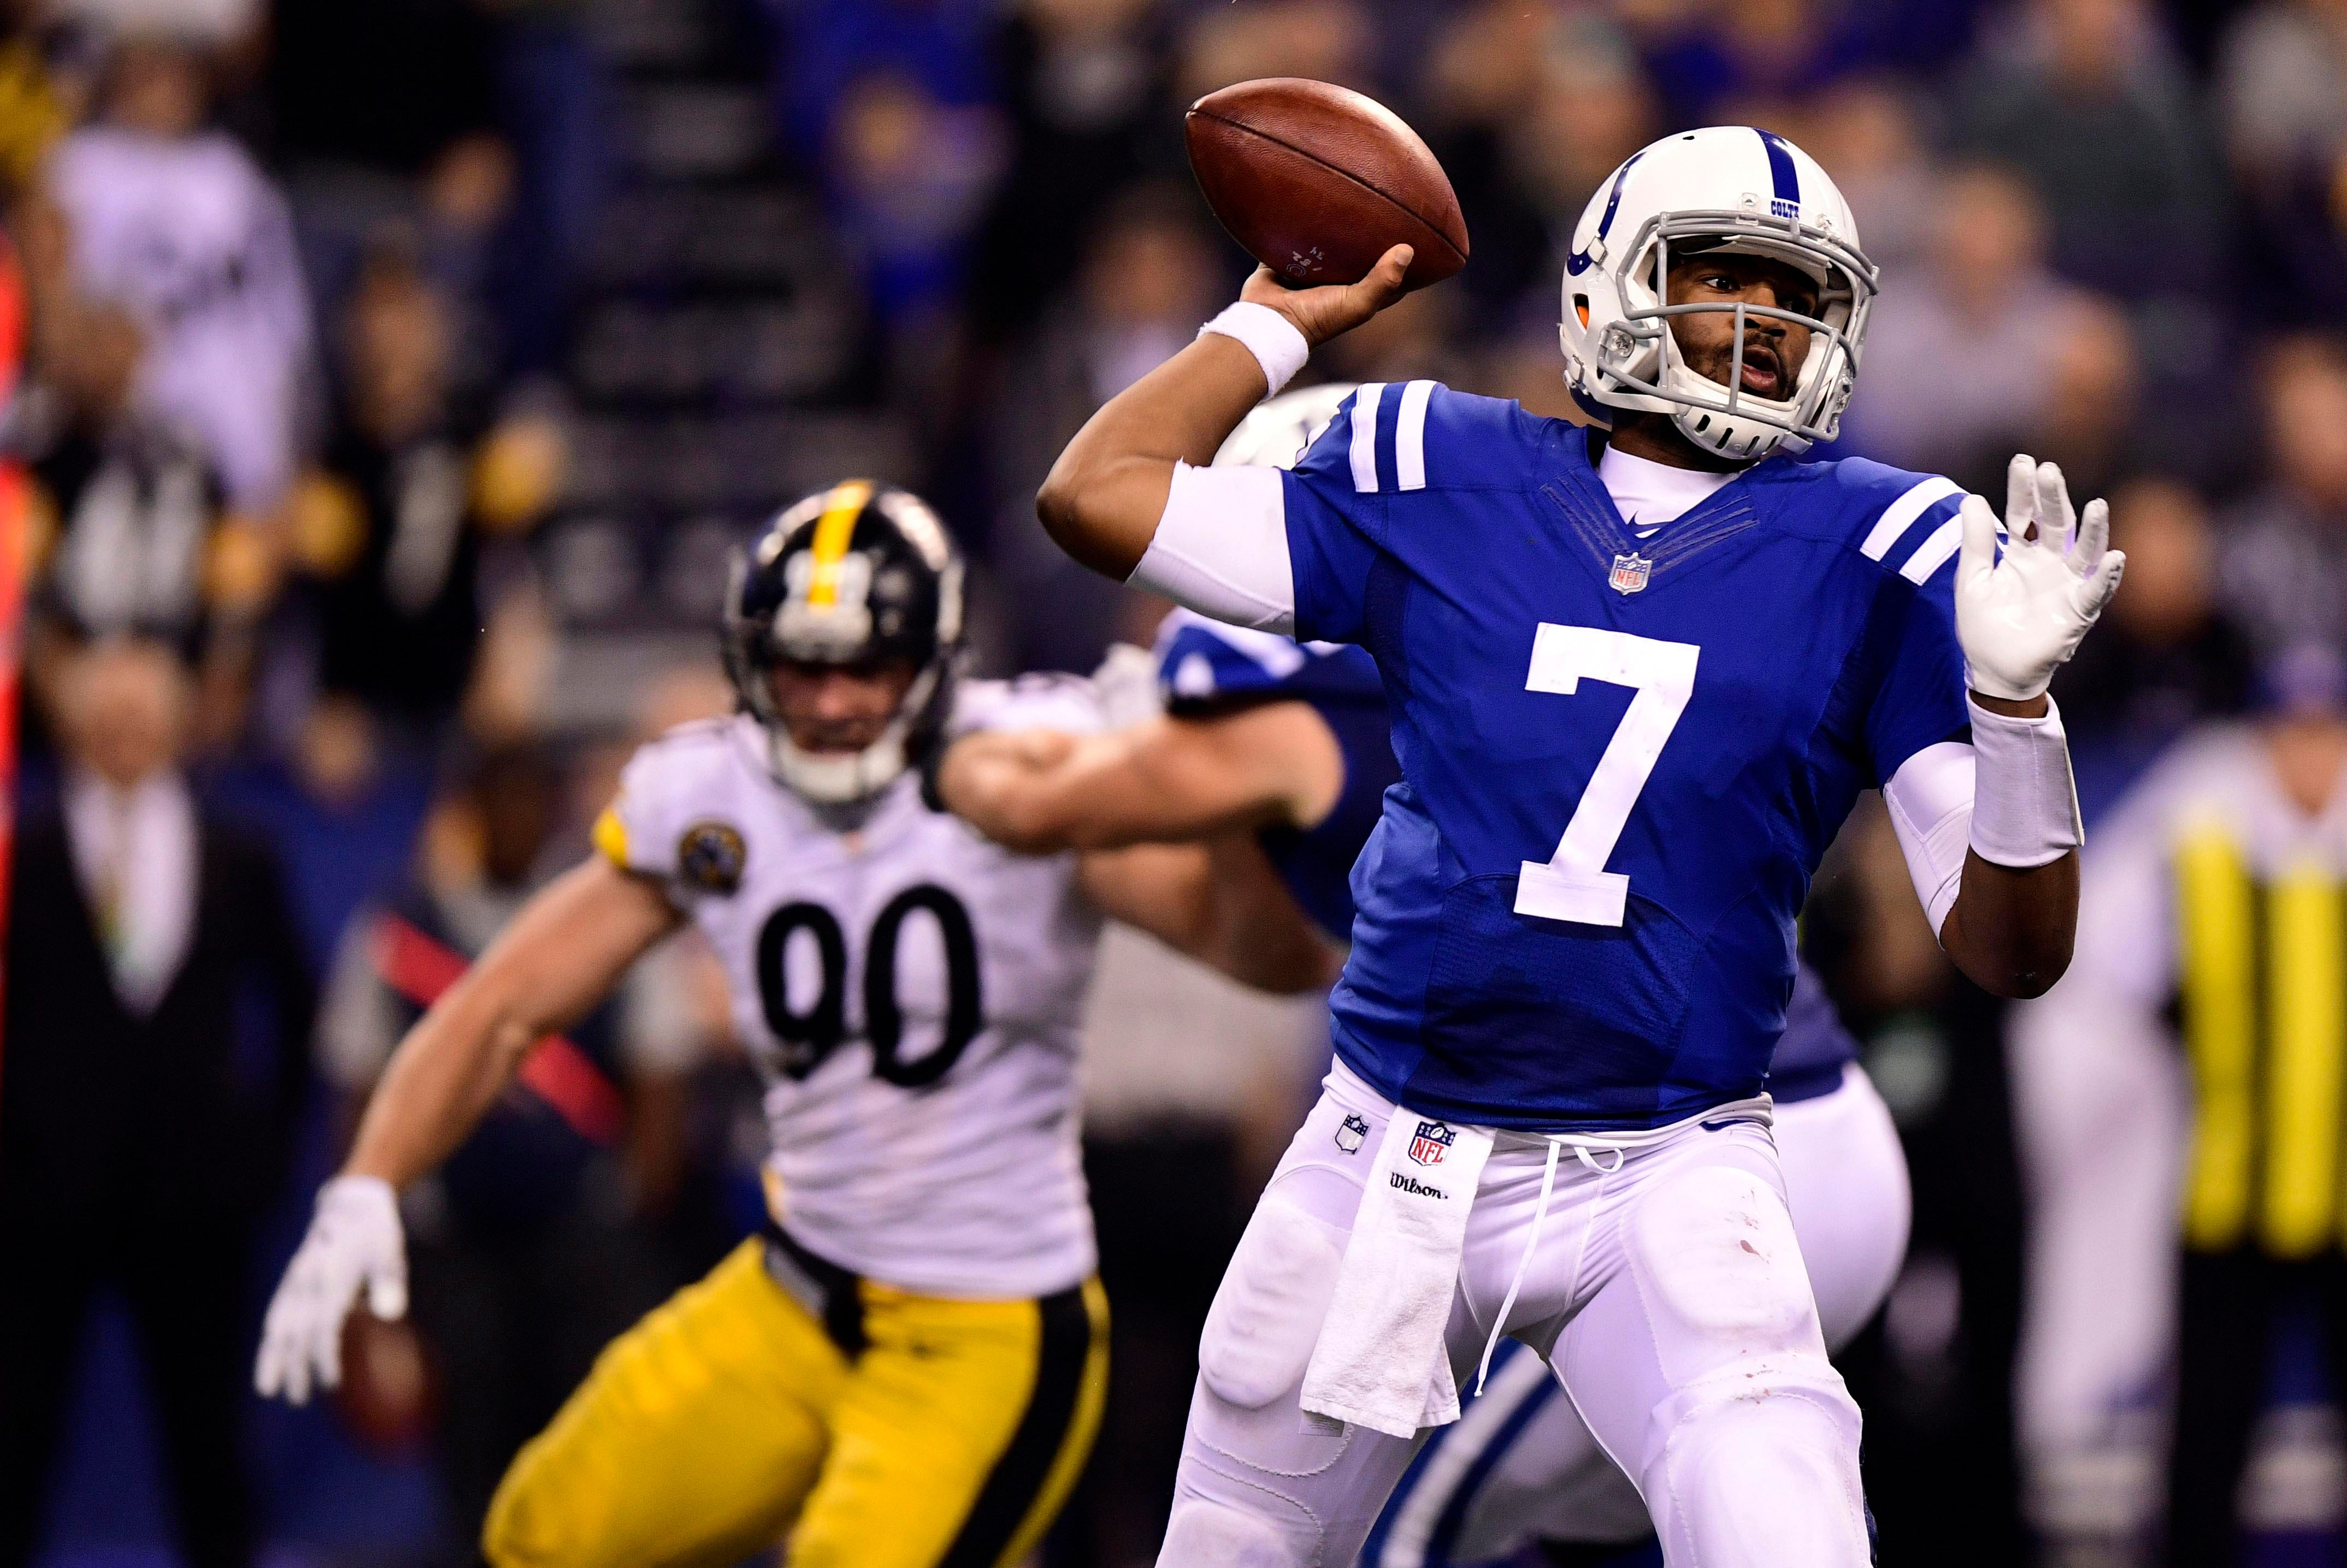 Concussion expert calls NFL protocol 'fraud' after Colts QB Jacoby Brissett returns